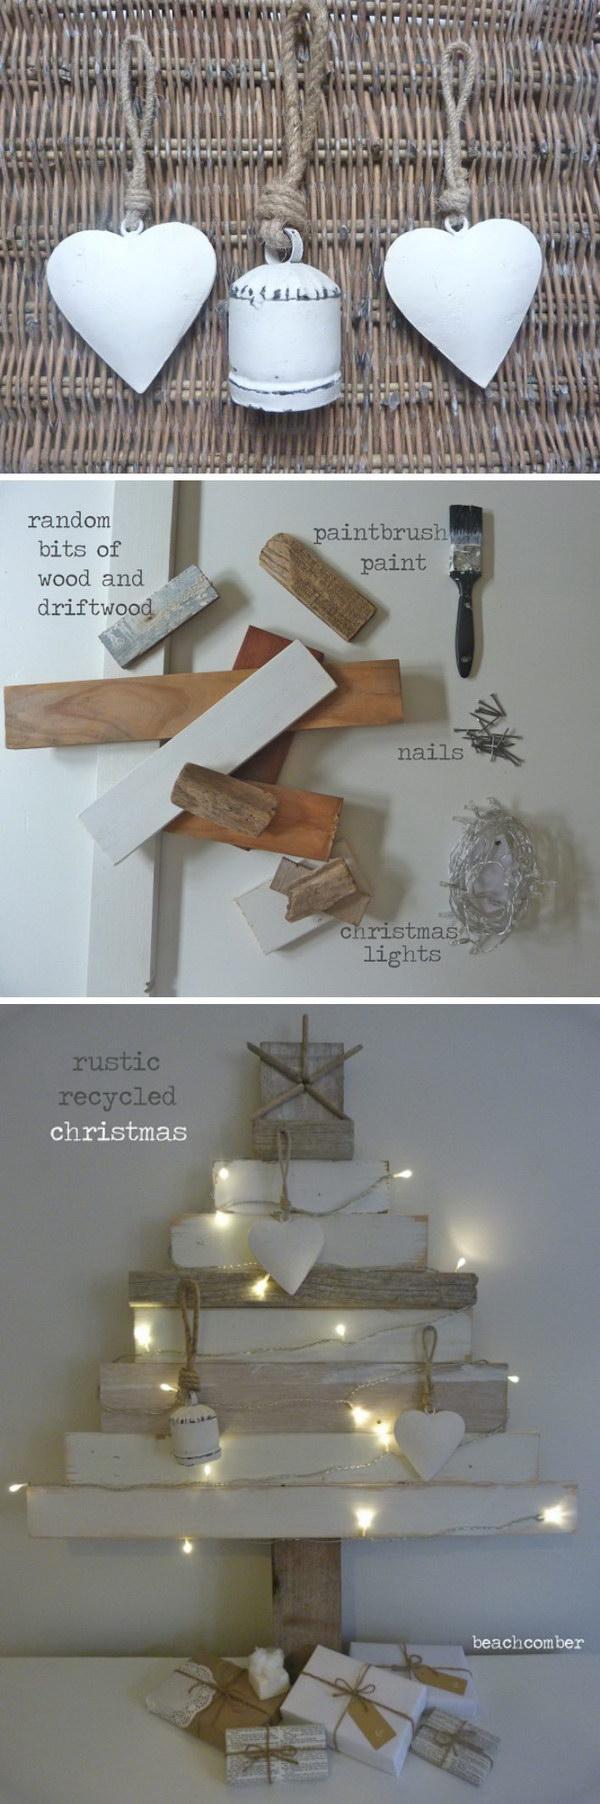 Christmas Tree Recycled From Scraps Of Old Wood & Driftwood.